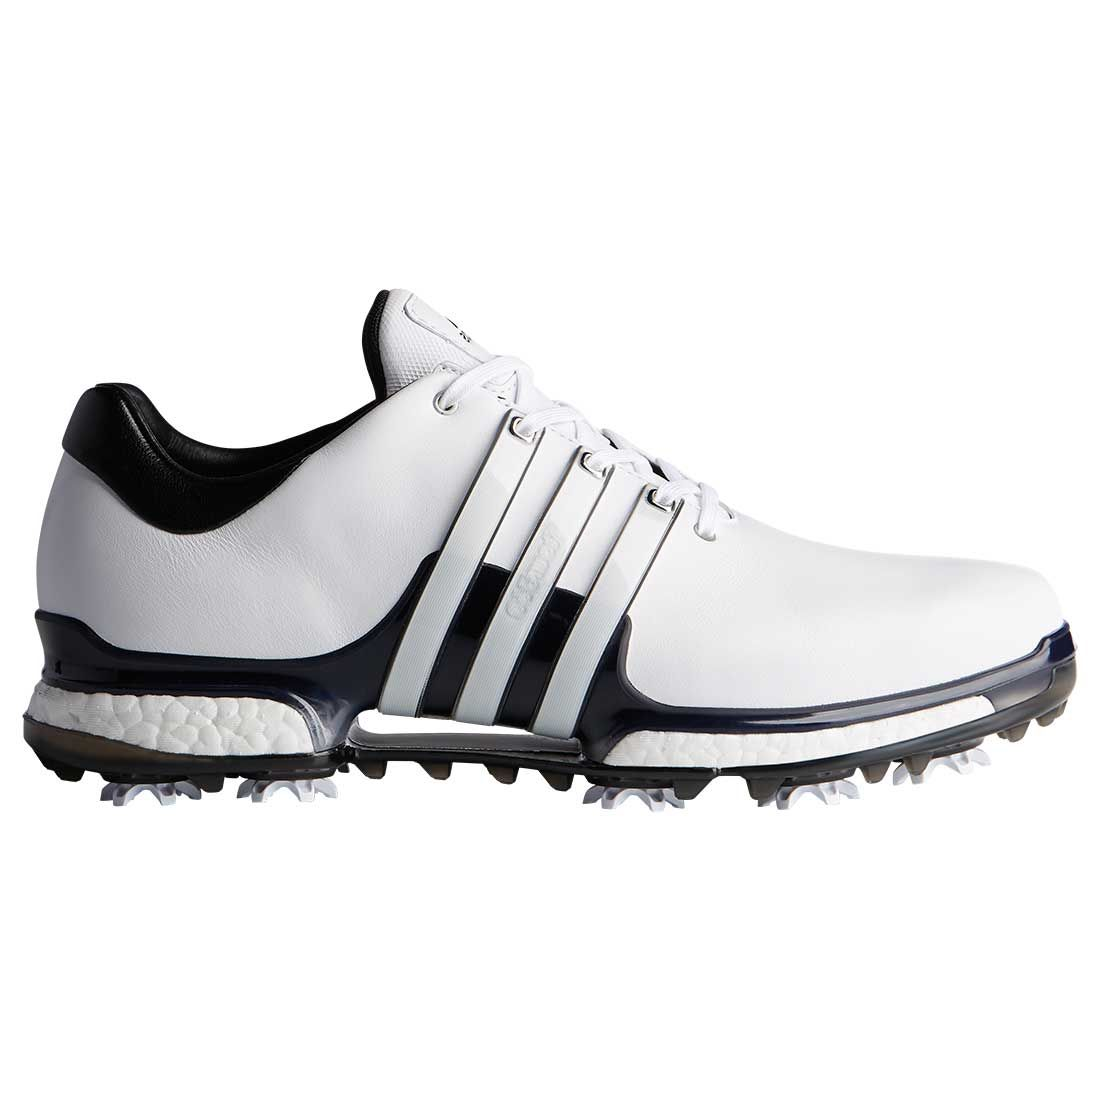 Buy Adidas Tour360 Boost 2.0 Golf Shoes